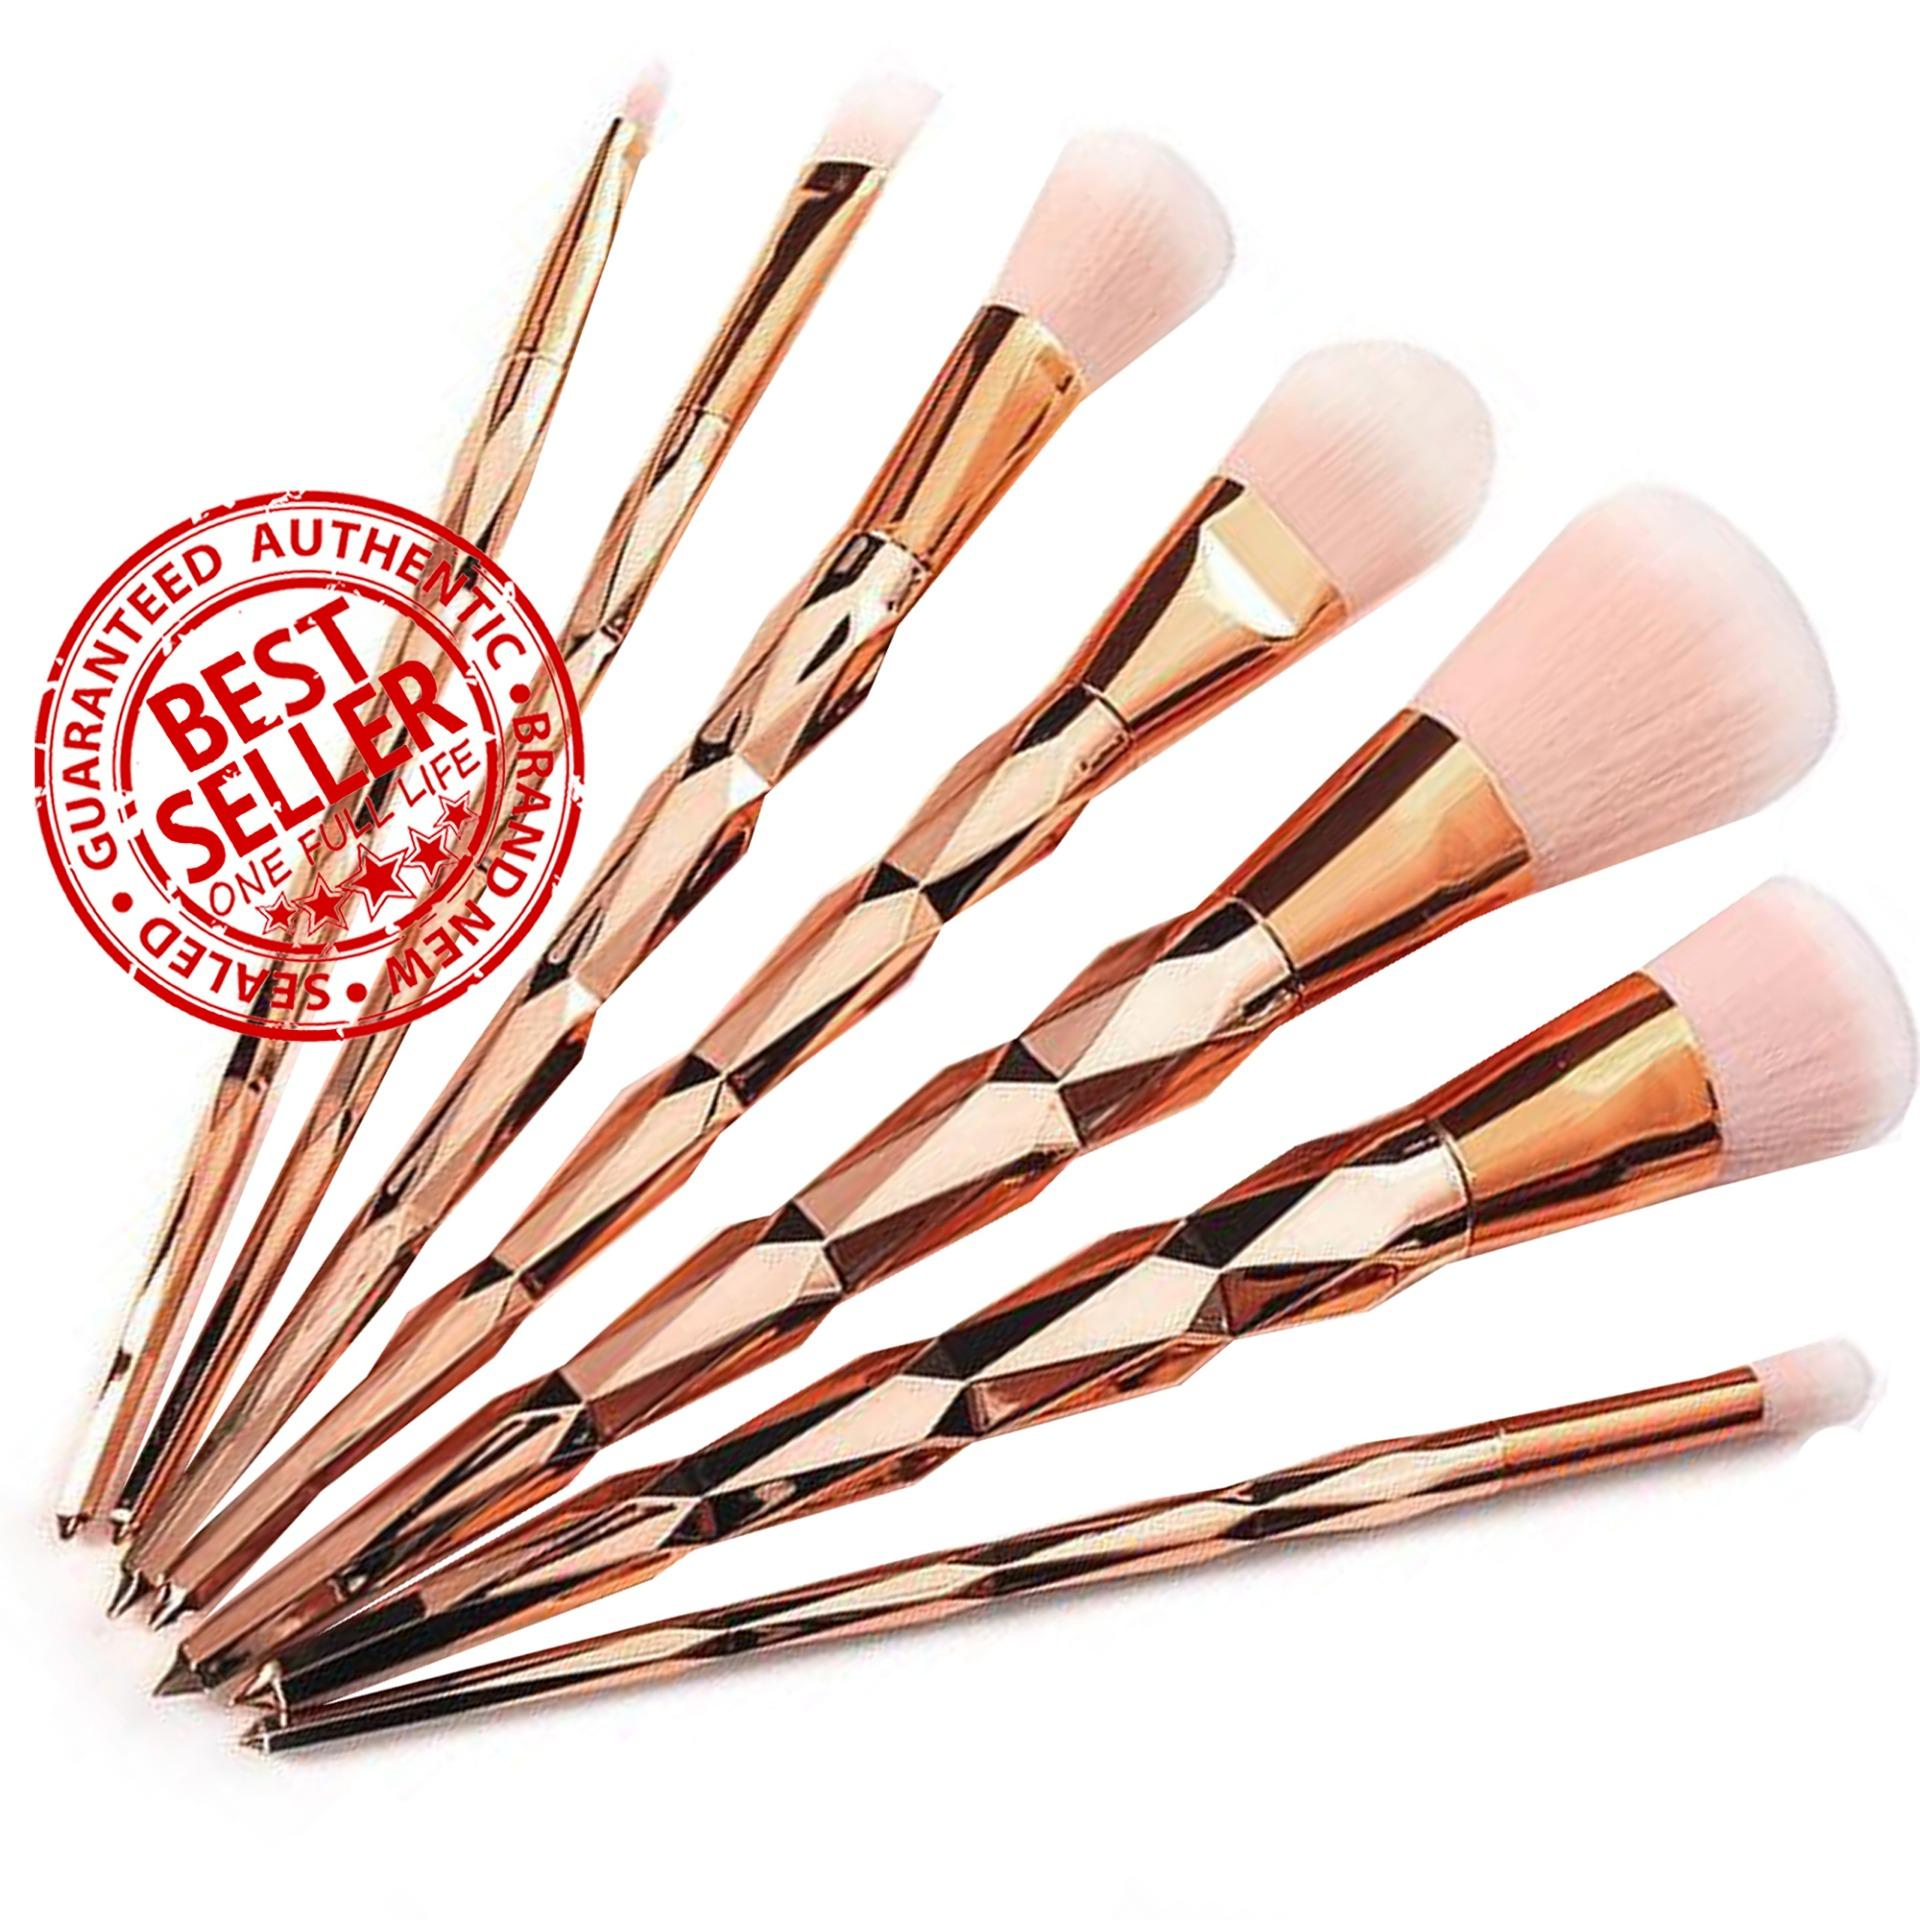 Unicorn Makeup Brush Set 7-Piece GOLD Philippines